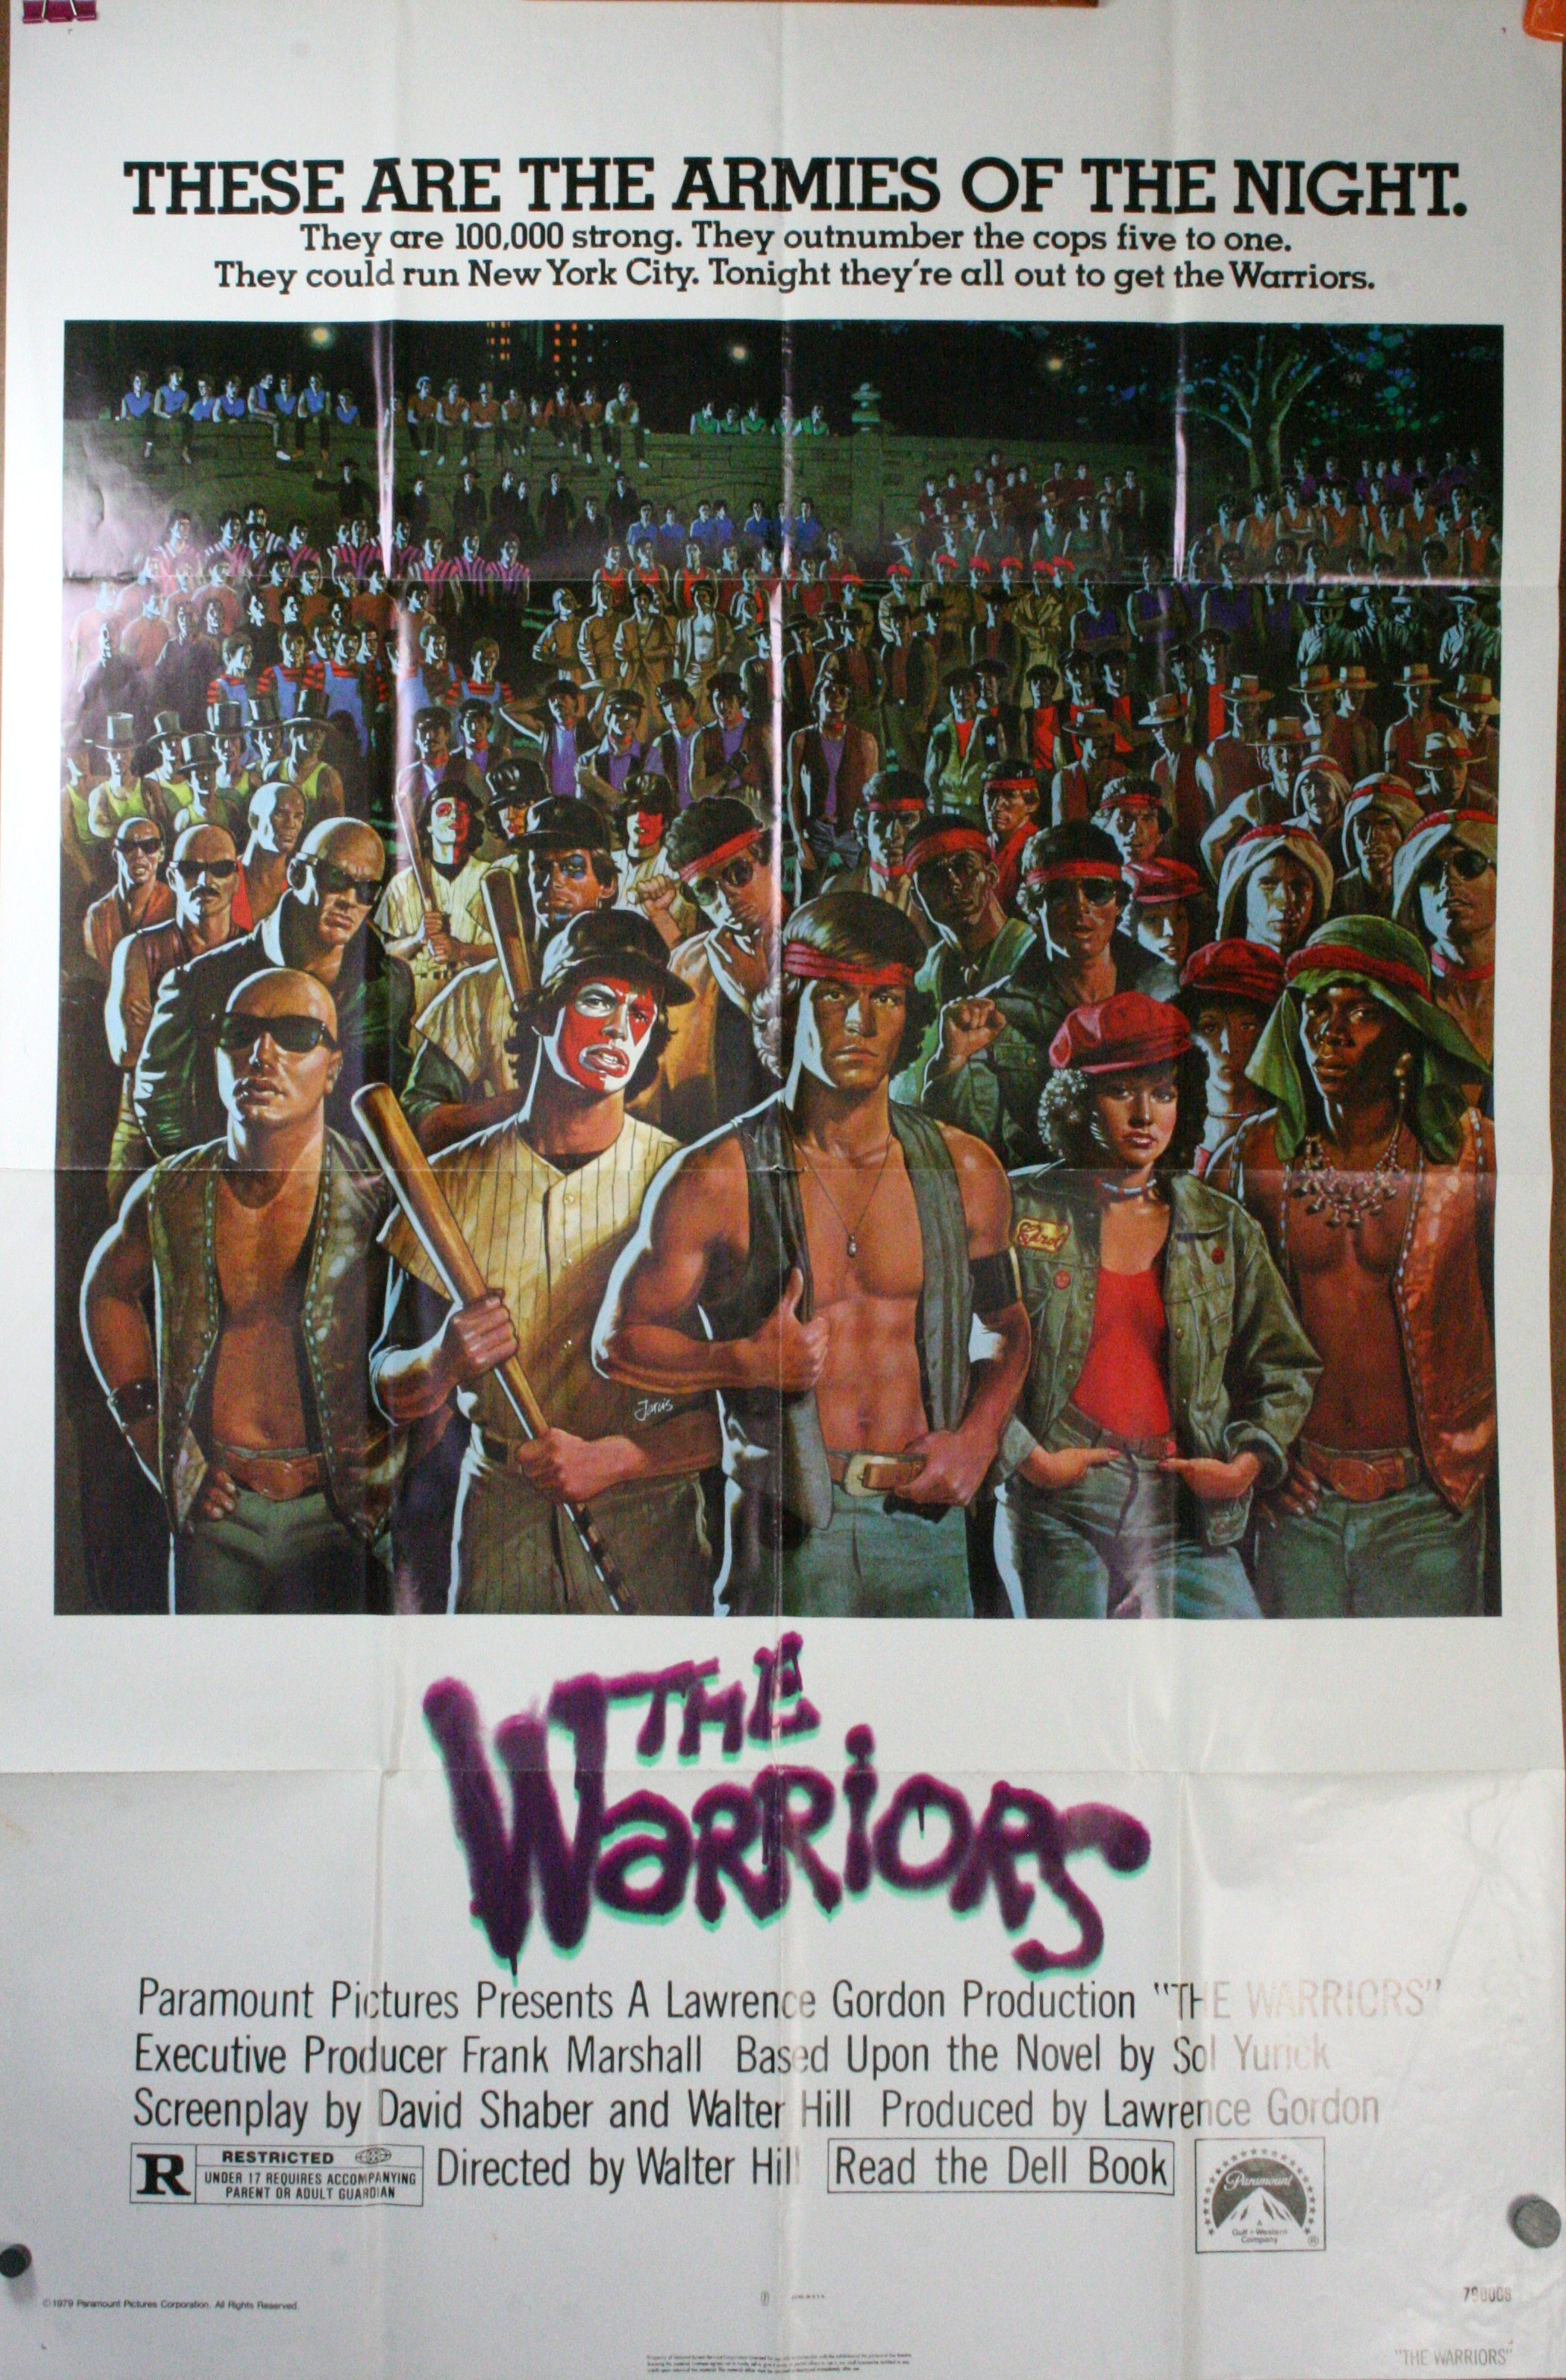 THE WARRIORS  Original Urban Gang Movie PosterThe Warriors Movie Poster